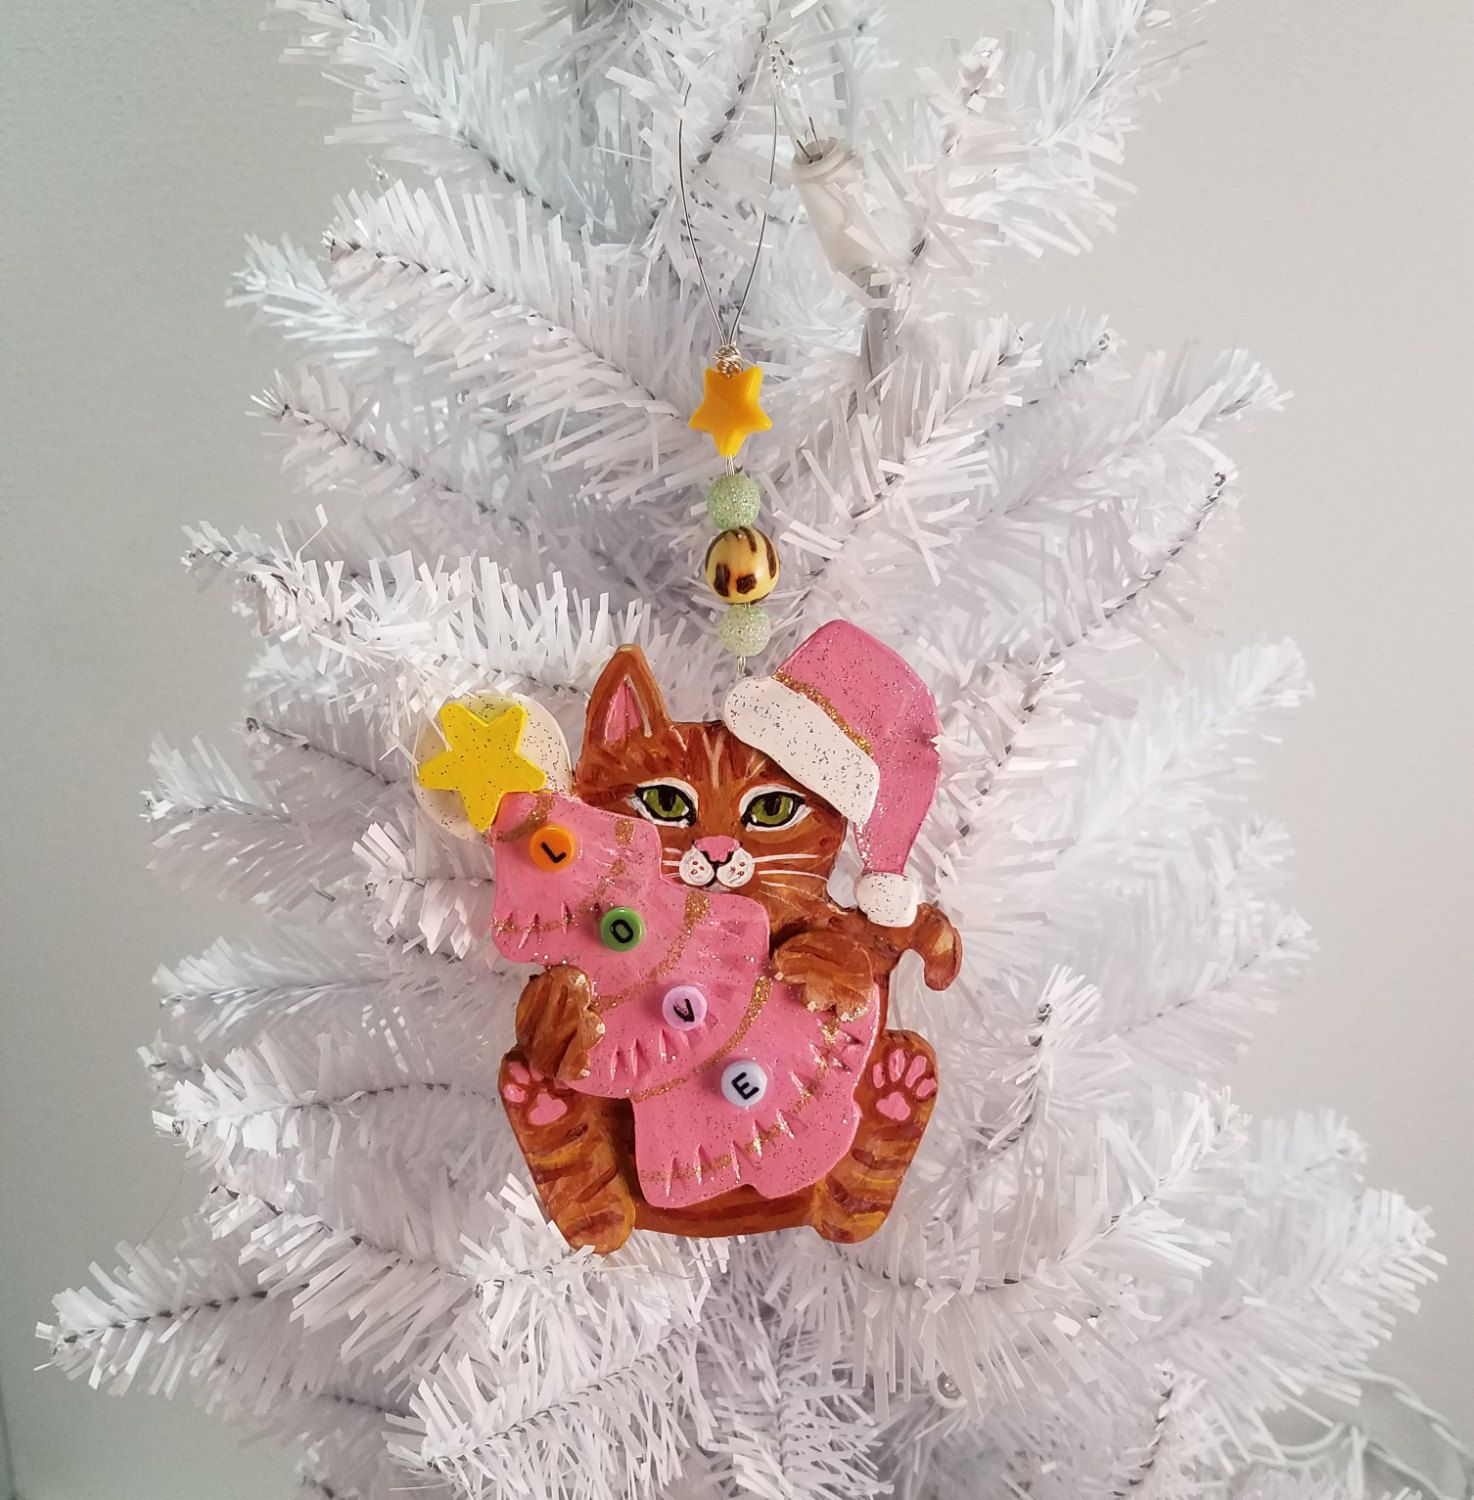 Tabby cat ornament - Tabby Cat Ornament Pink Christmas Tree L O V E Beads Handmade Painted Ginger Tabby Cat Art Beaded Hanger Ornament Gift Box Included